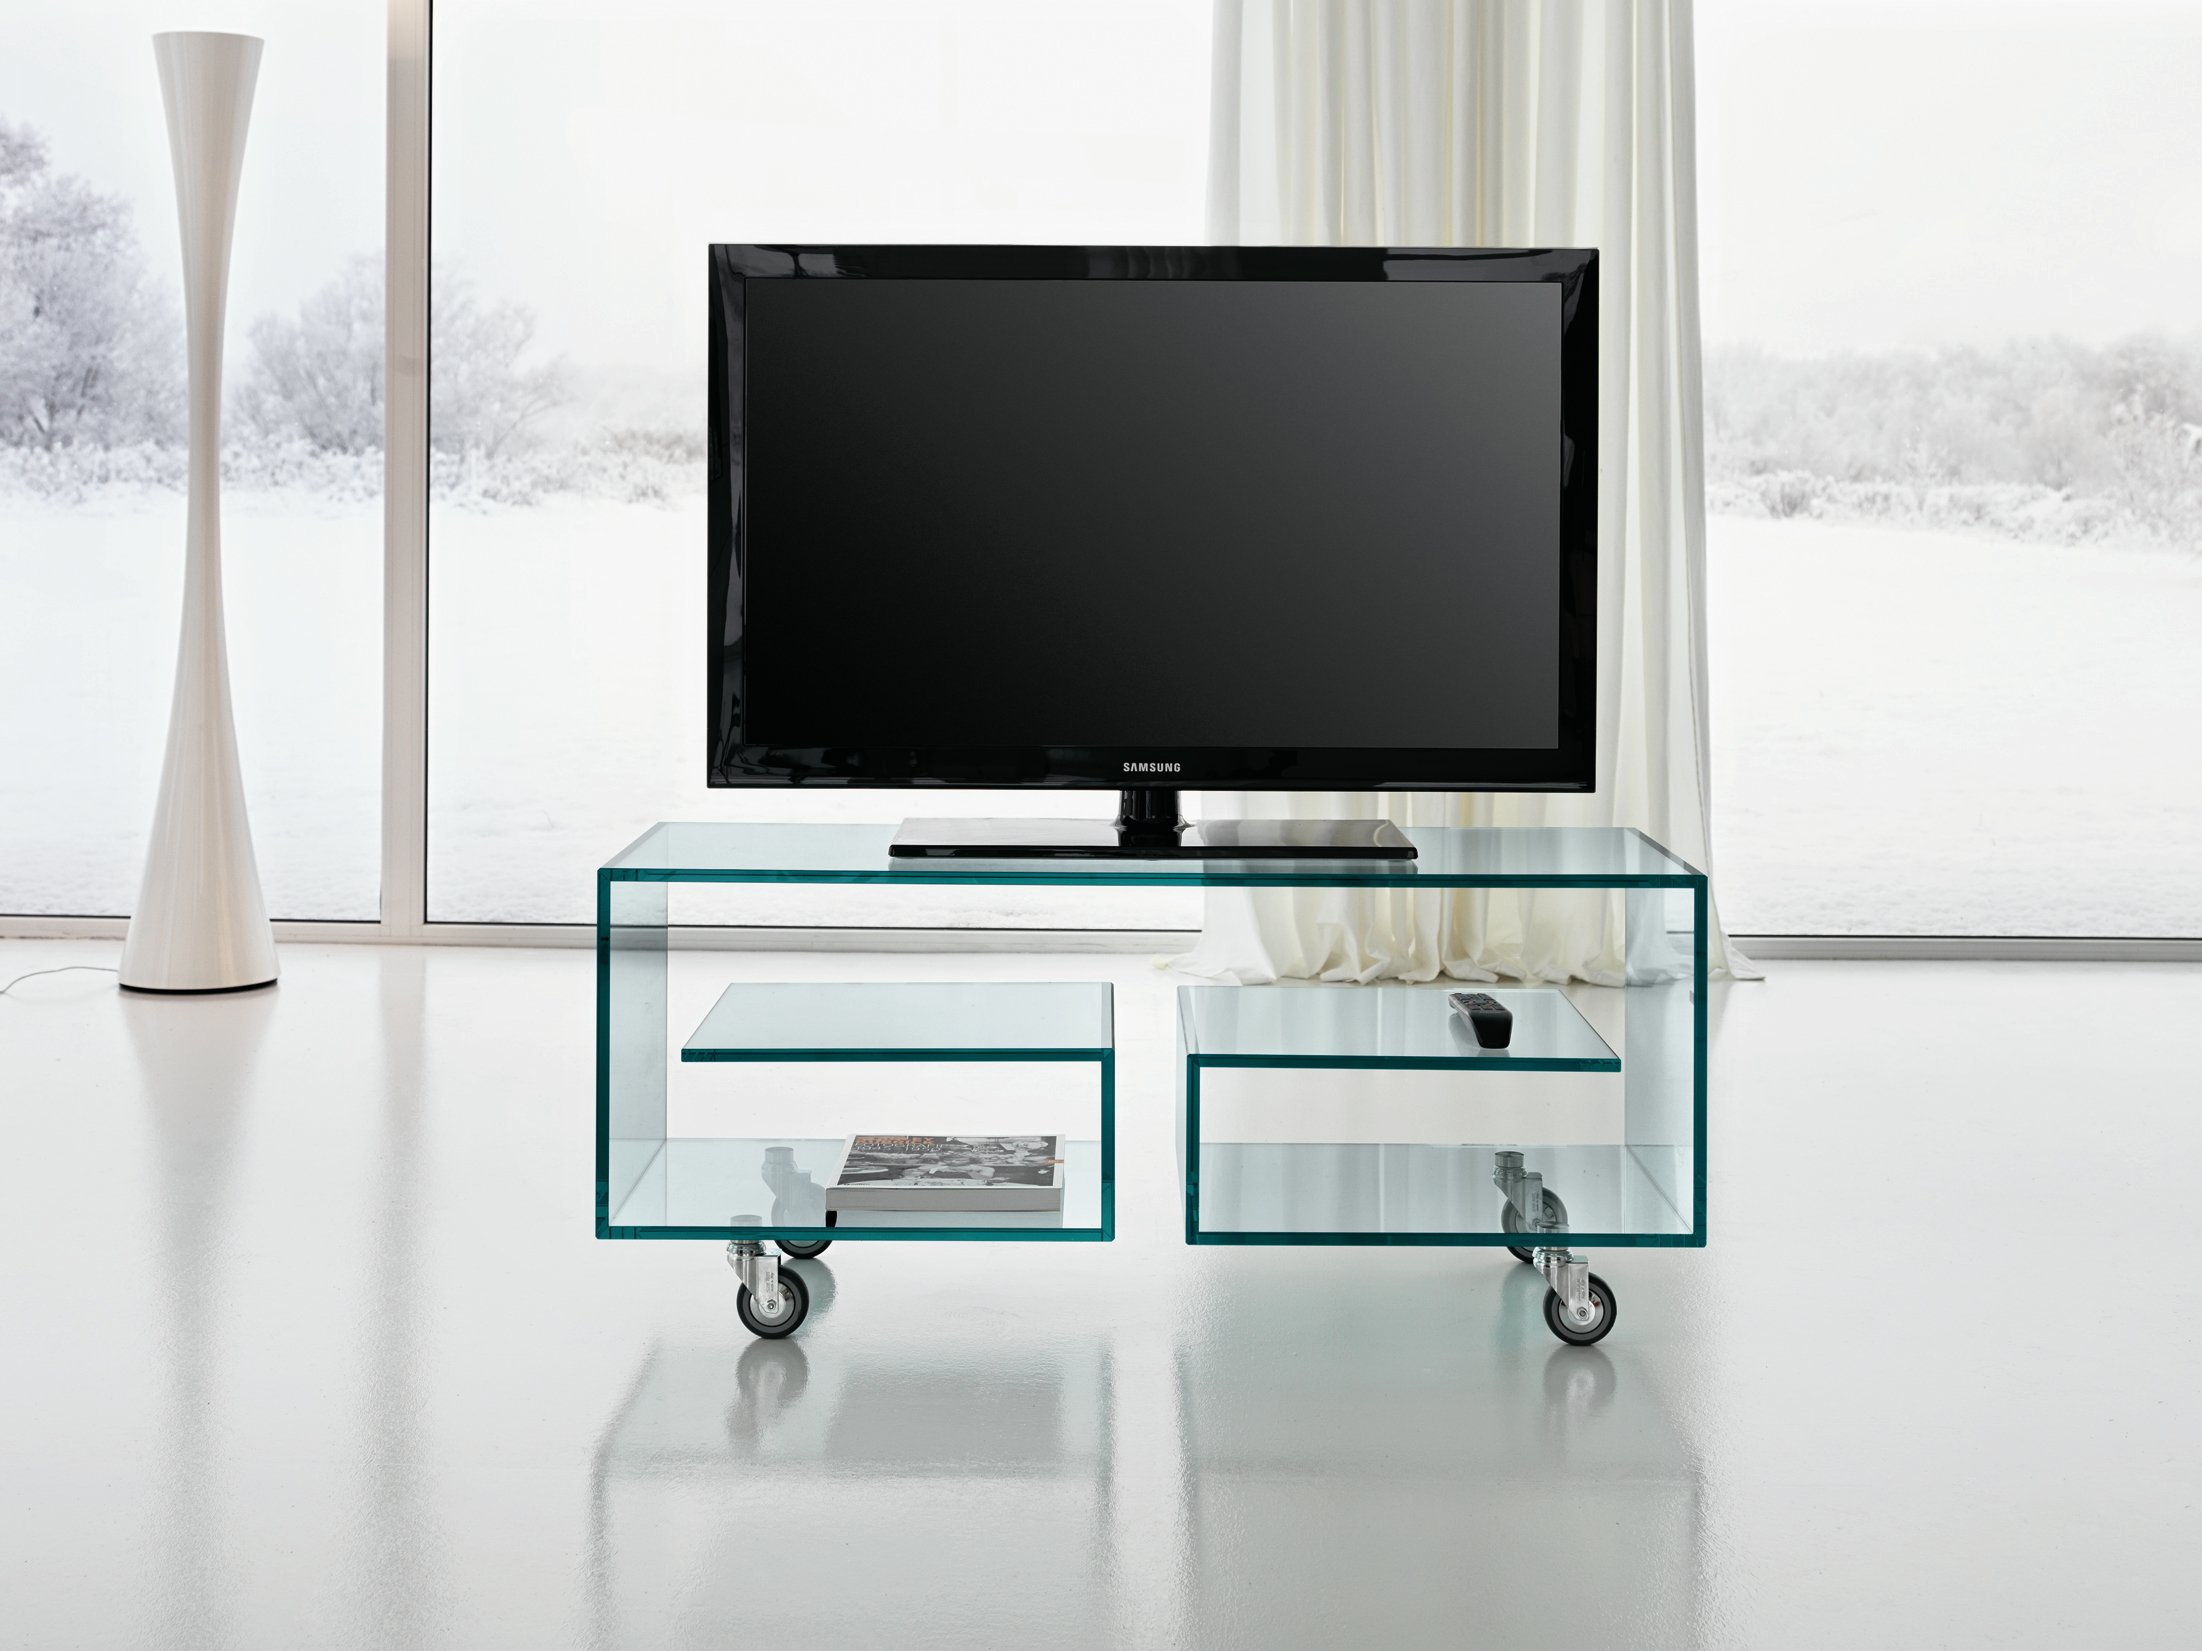 Meuble tv en verre roulettes fl 1 by t d tonelli for Meuble tele en verre design